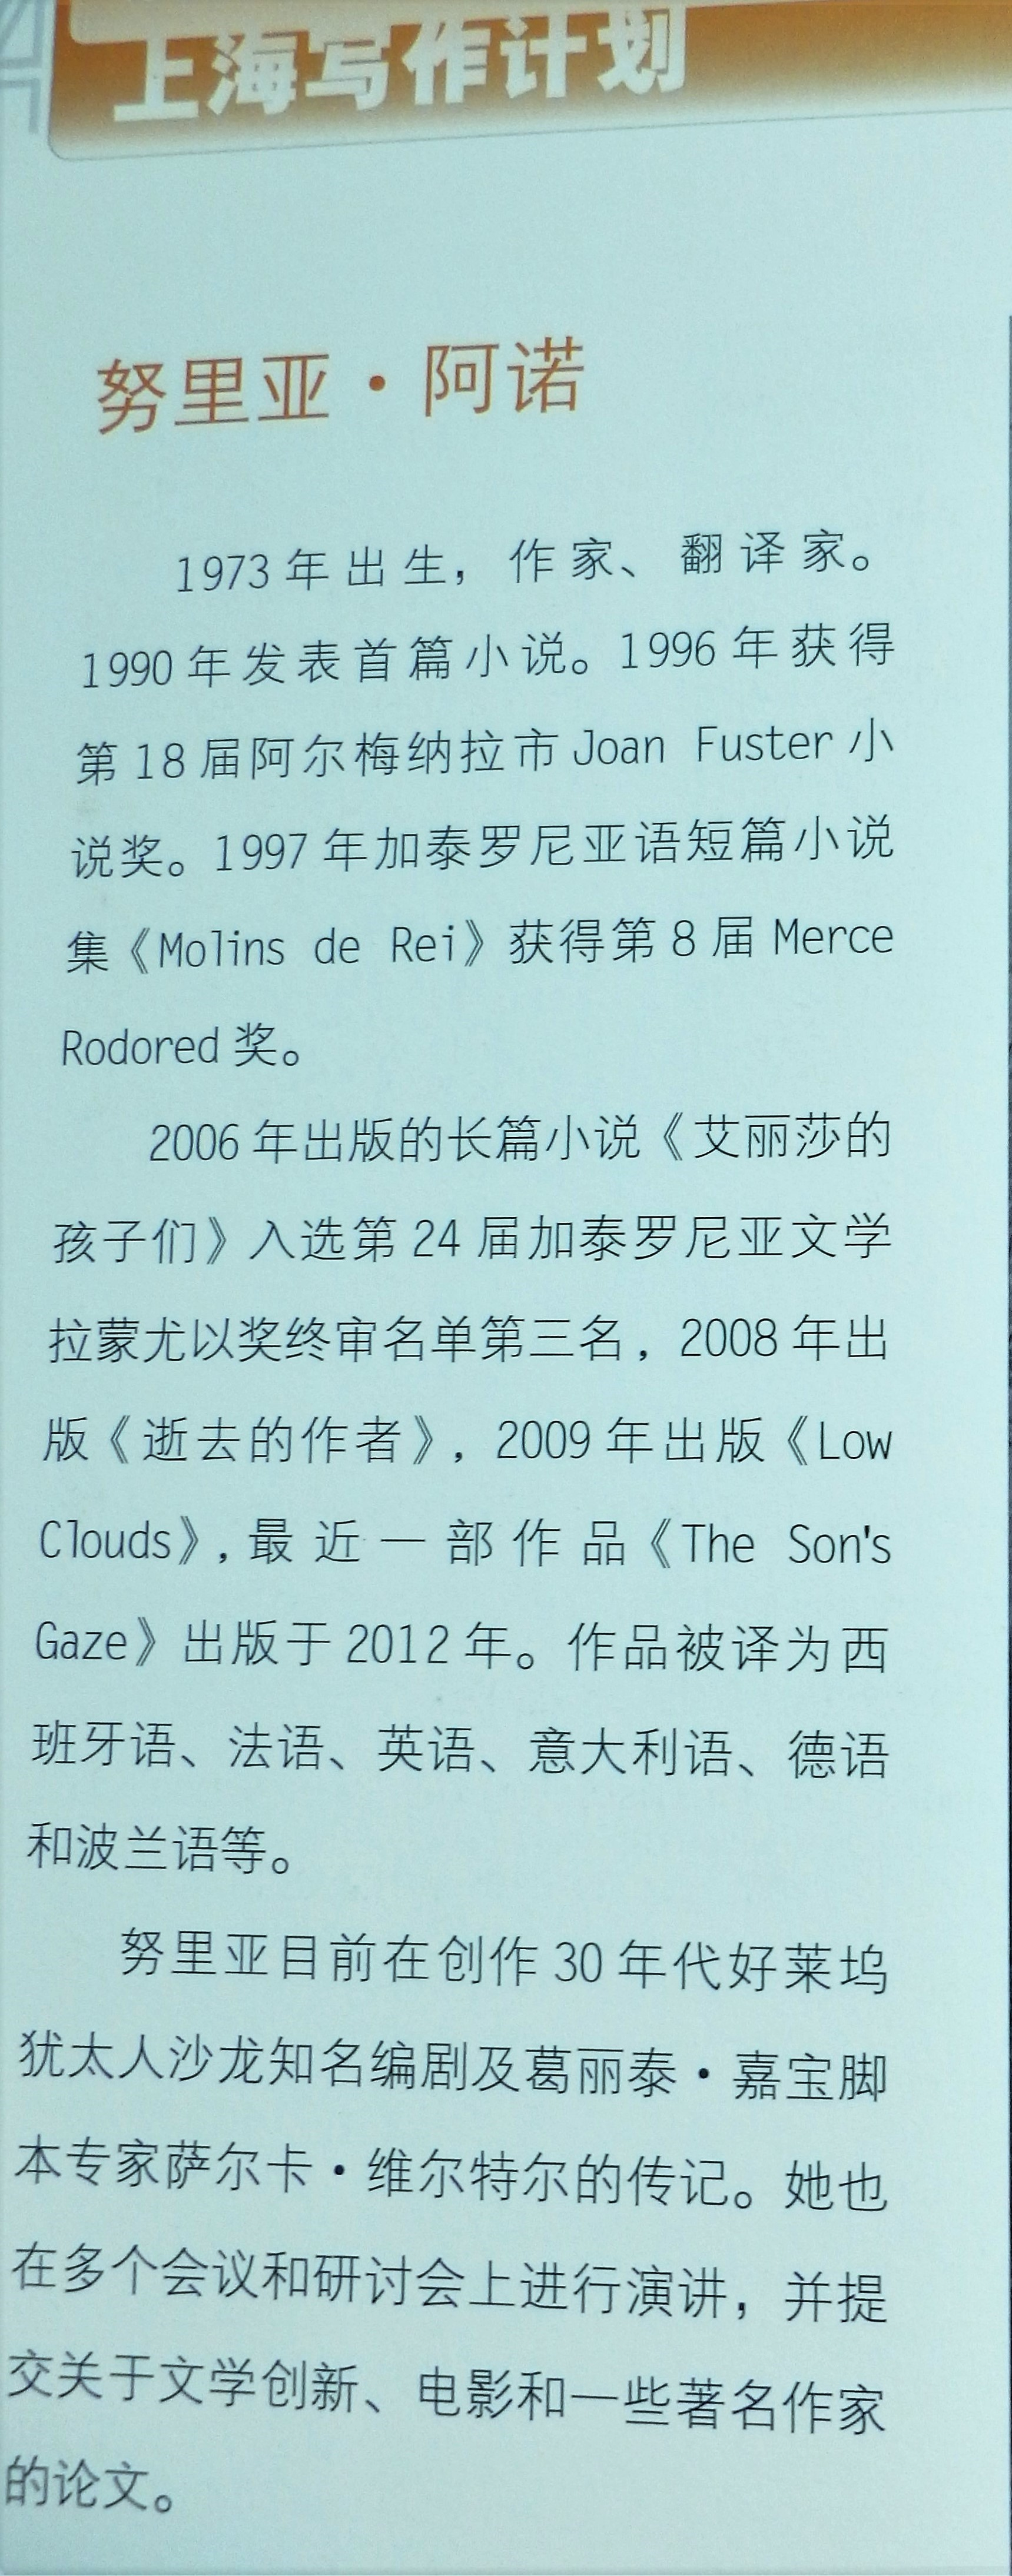 Biography Núria Añó in Chinese Language